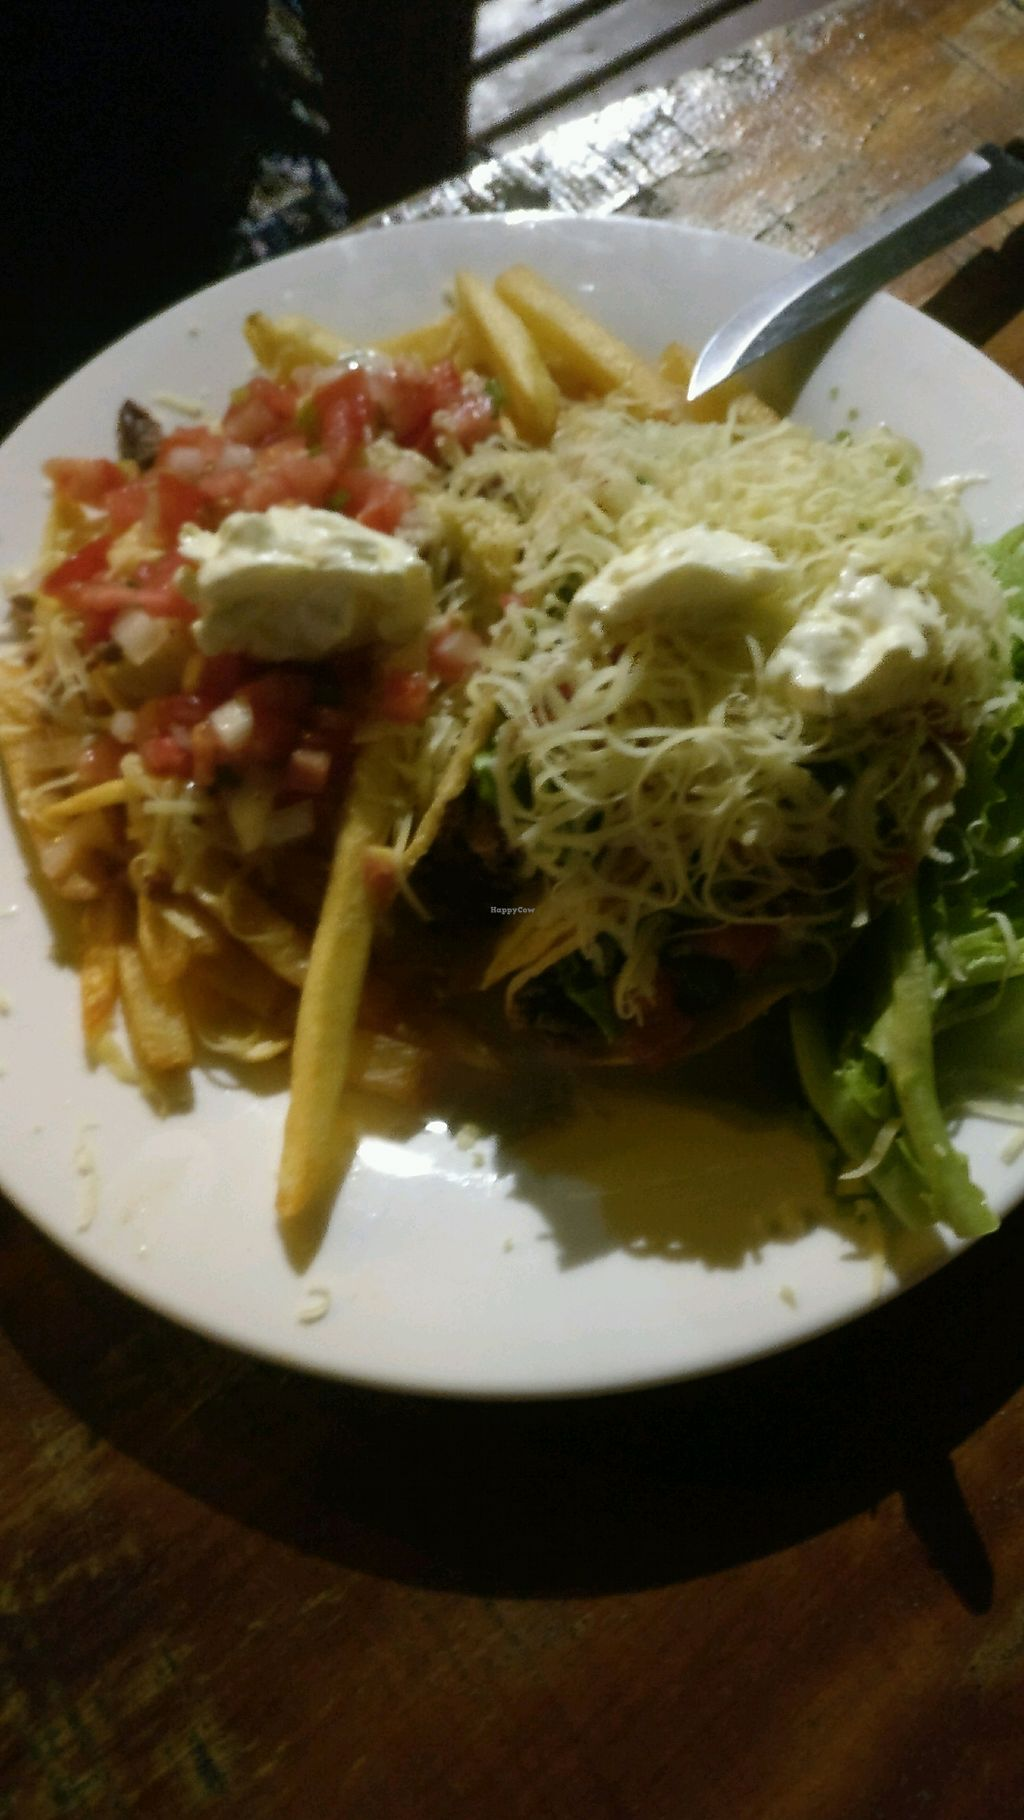 """Photo of Amigo's Mexican Restaurant  by <a href=""""/members/profile/nick4554"""">nick4554</a> <br/>vegetarian tacos <br/> October 18, 2017  - <a href='/contact/abuse/image/101814/316352'>Report</a>"""